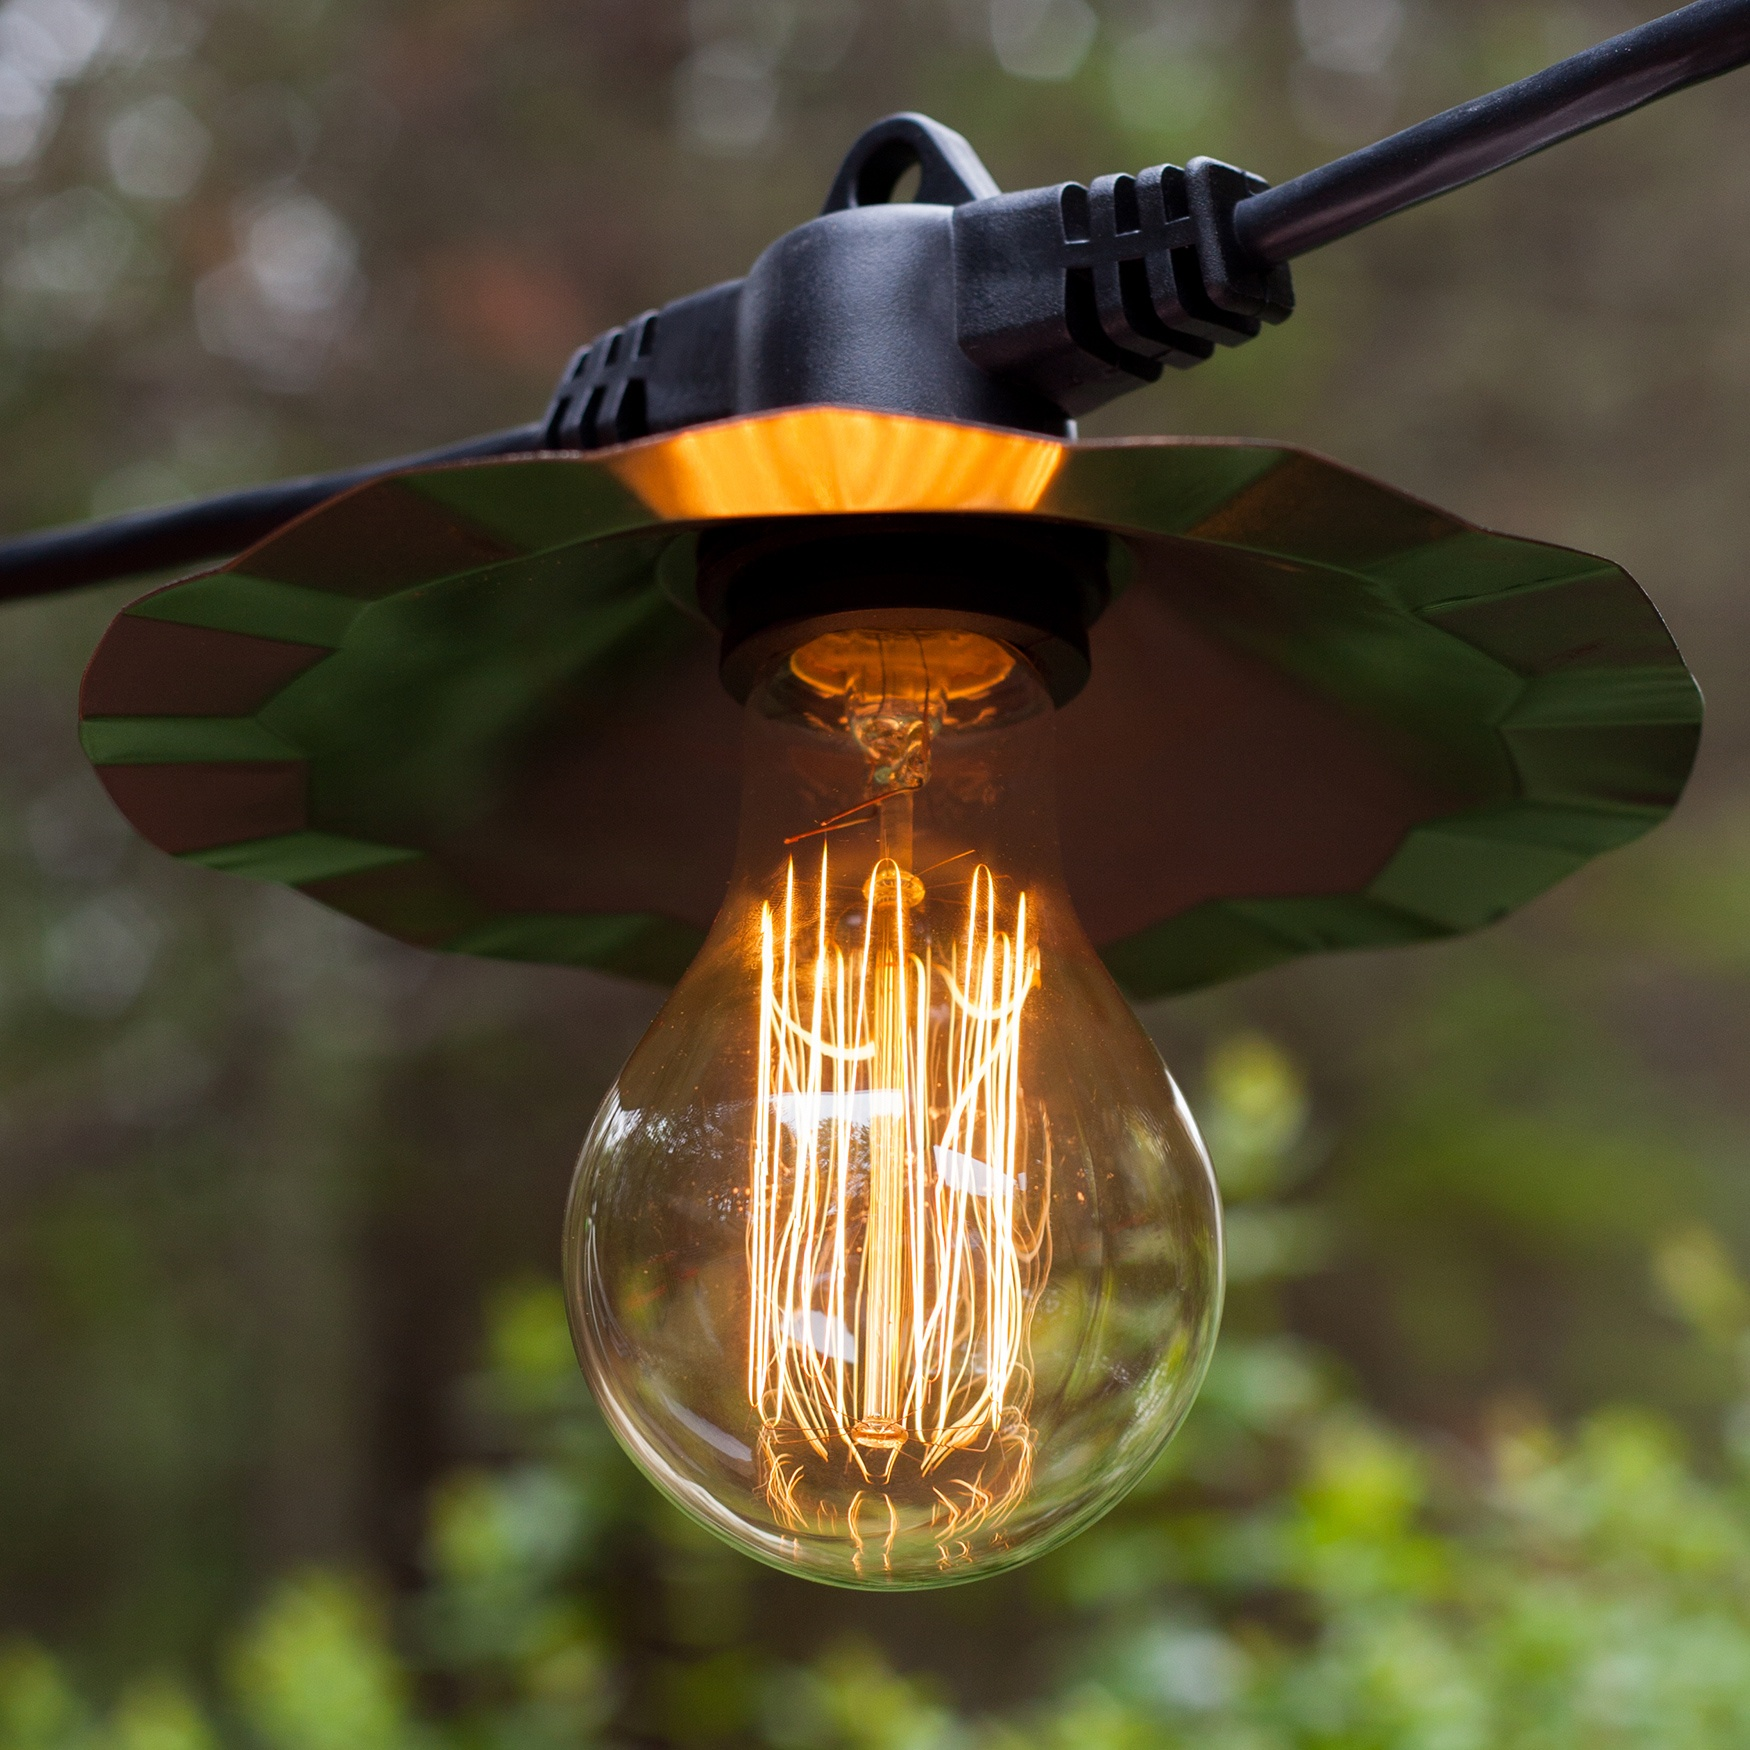 Commercial Clear Patio String Lights, 7 A75